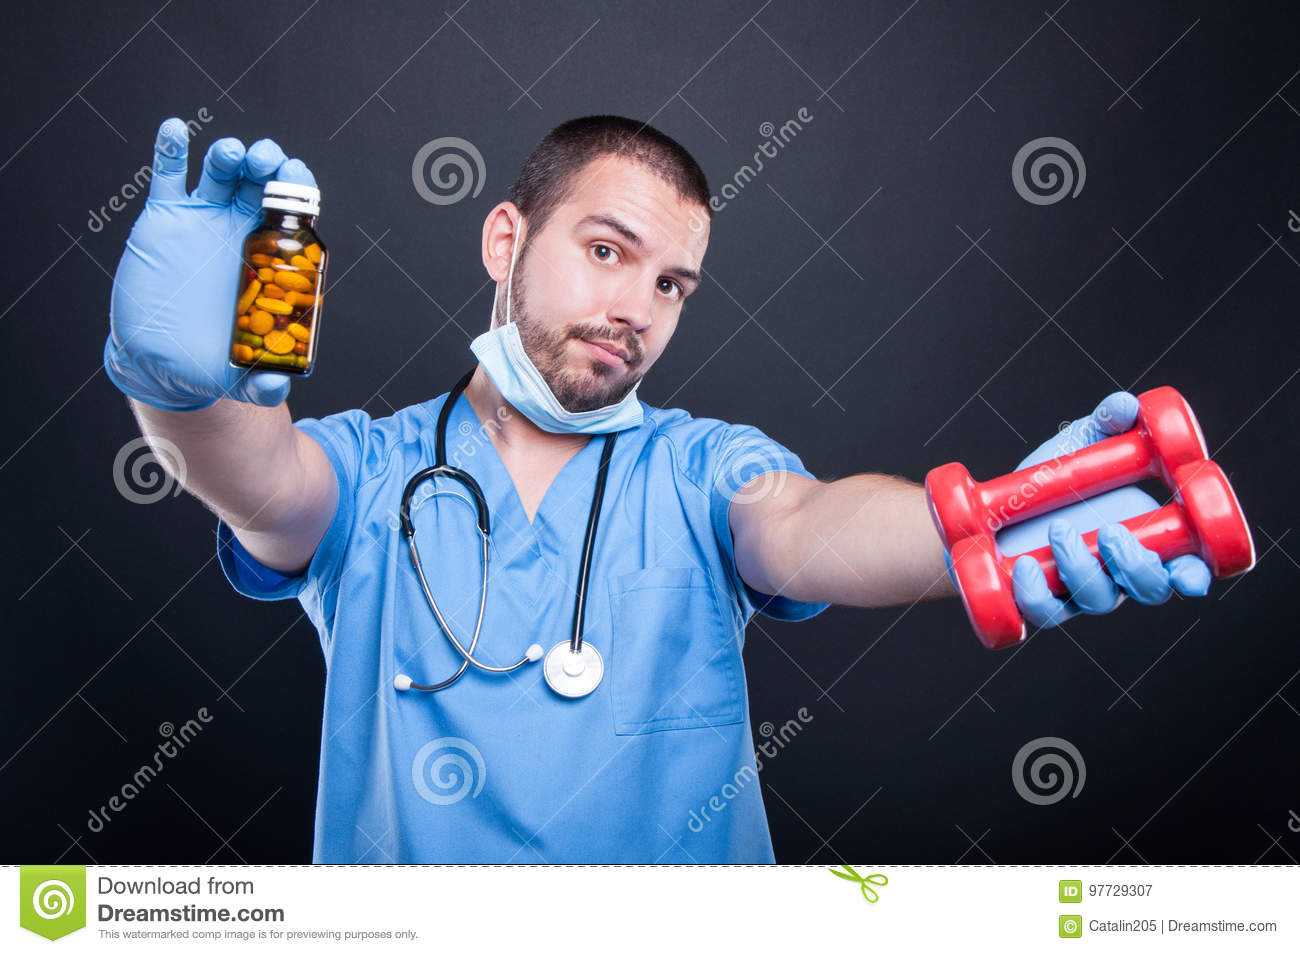 Plastic surgeon wearing scrubs showing dumbbells and pills